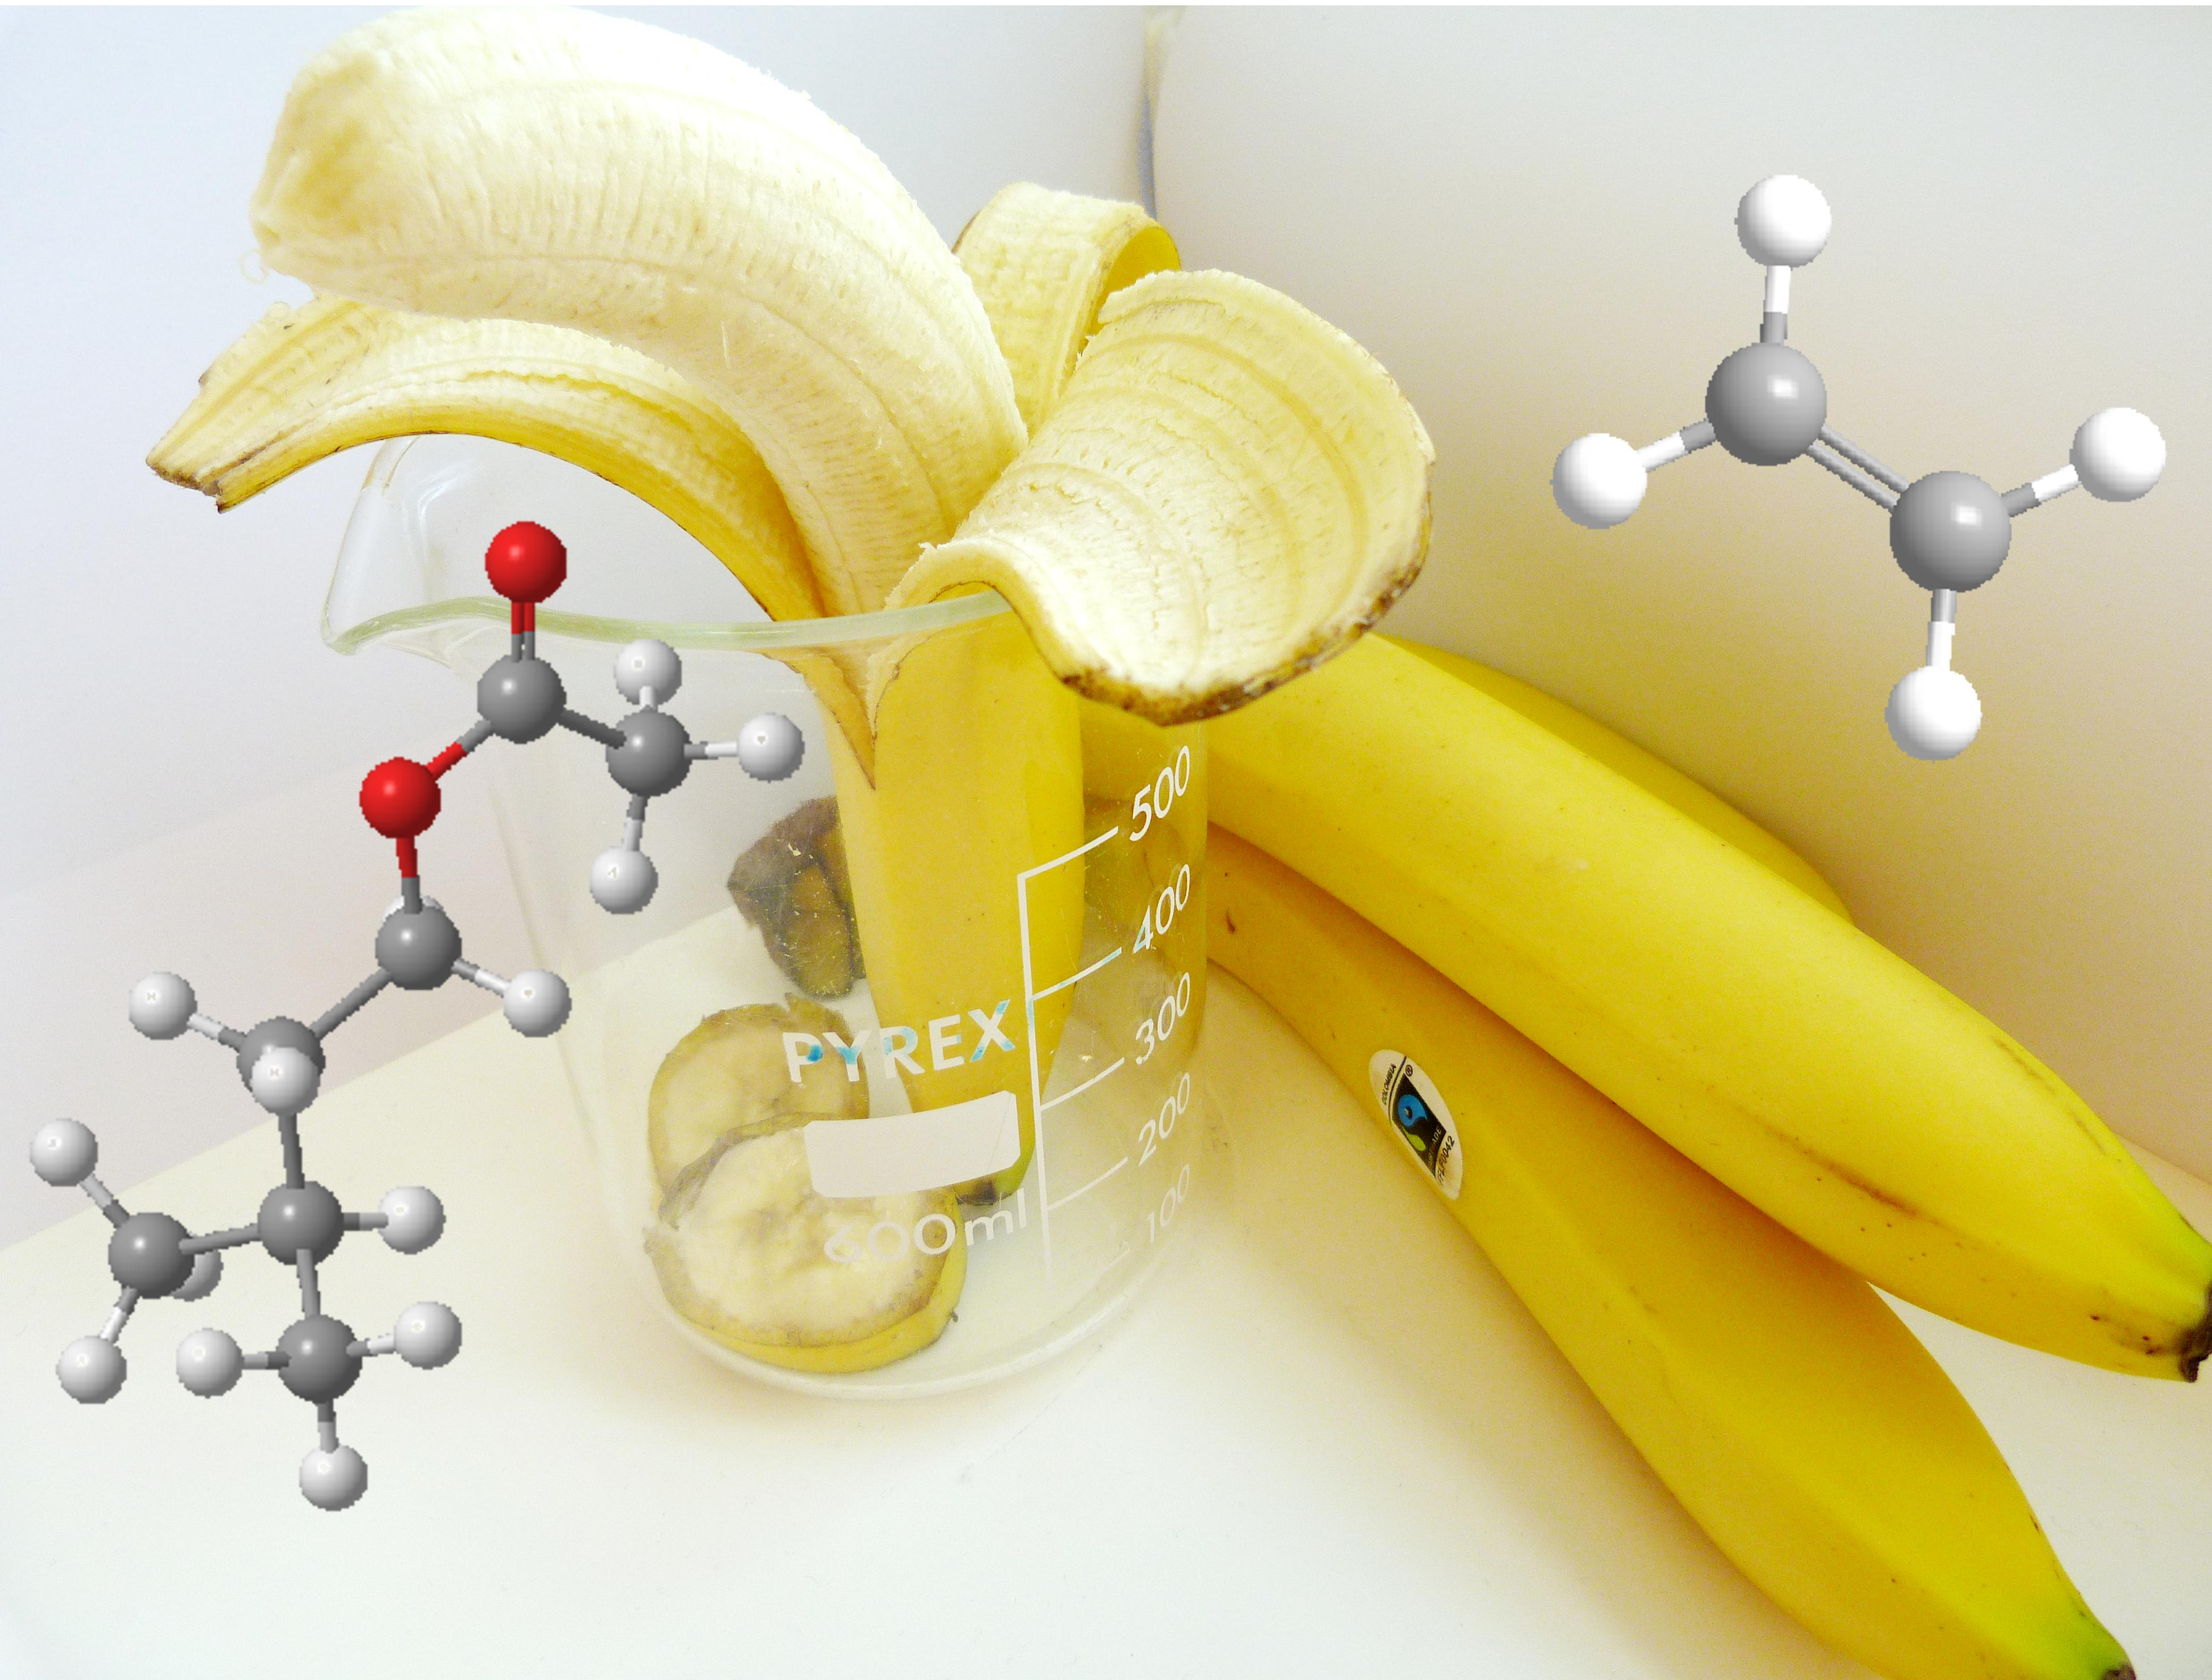 synthesis of isopentyl acetate banana oil Synthesis isopentyl acetate (banana oil) from isopentyl alcohol, acetic acid, sulfuric acid, and heat with purity of 10% alcohol and 2% acetic acid.